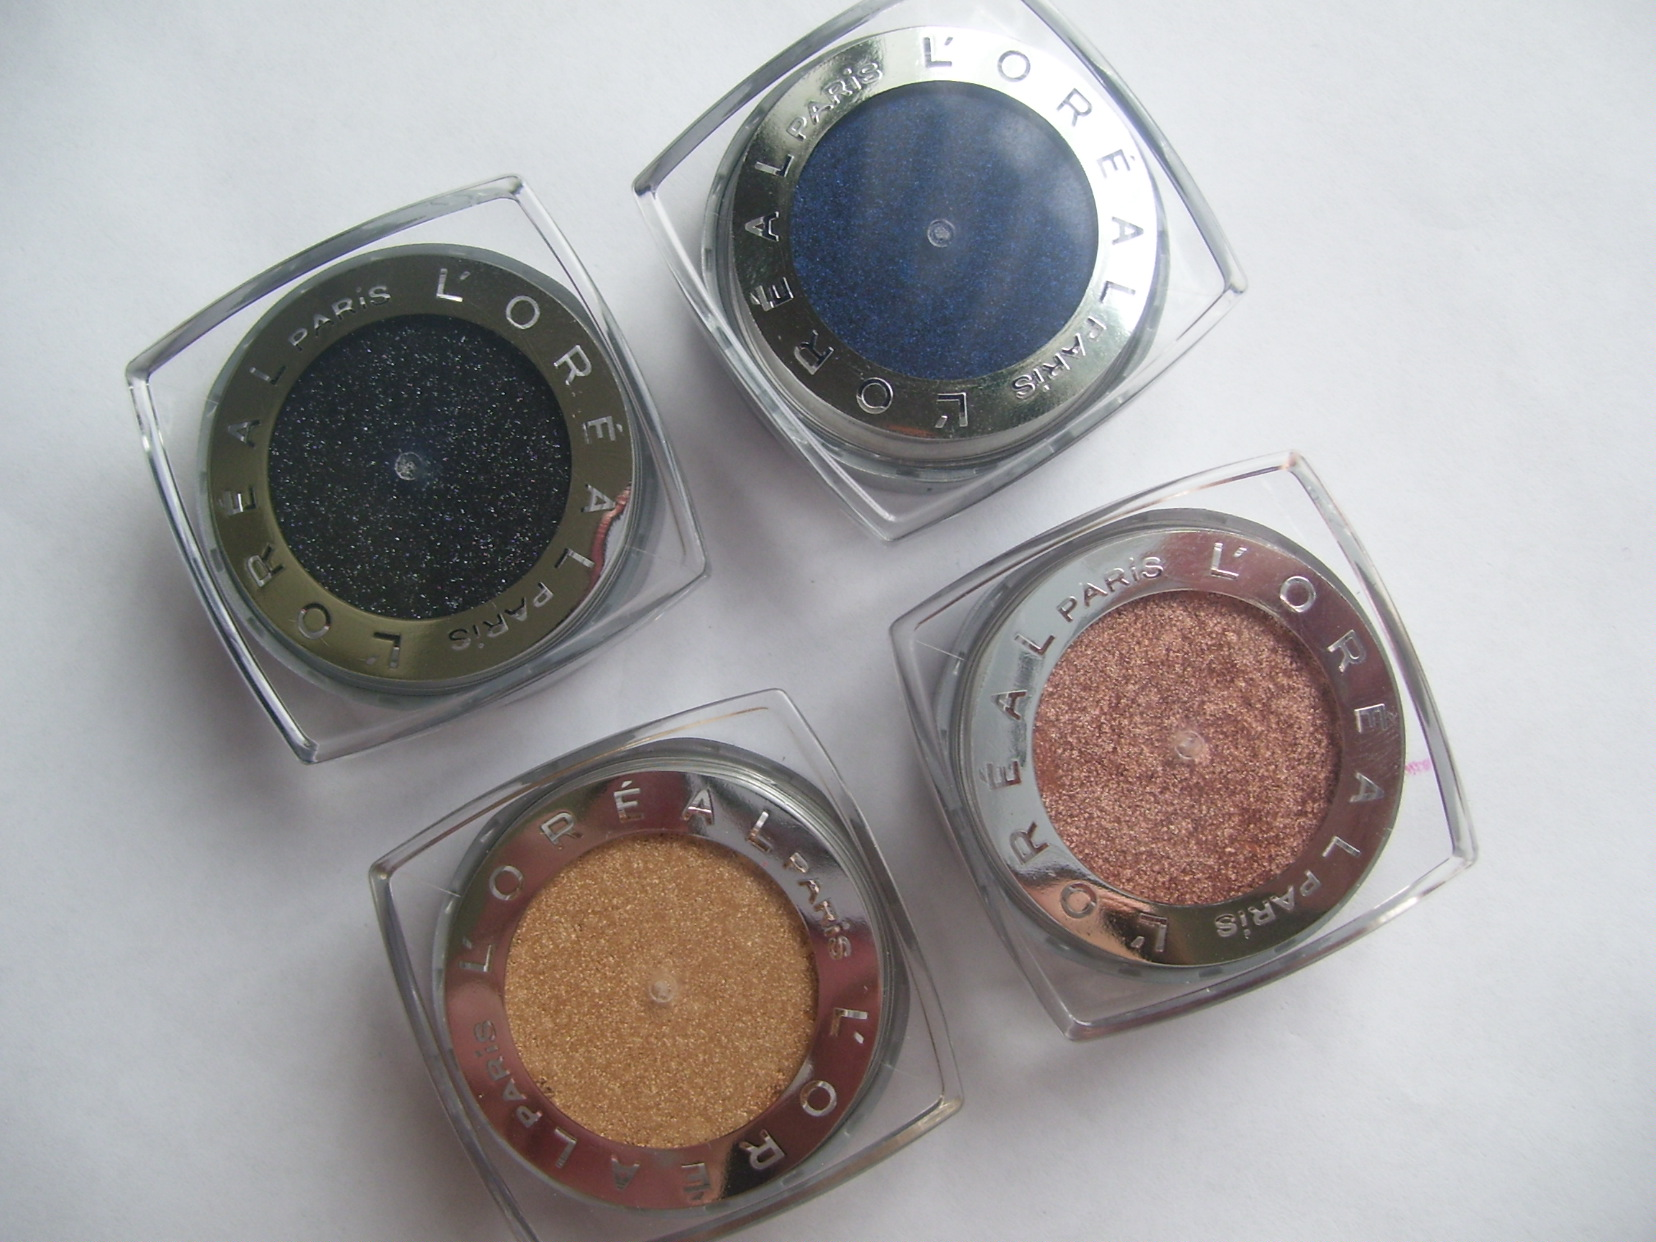 *CLOSED* Giveaway: L'Oreal Paris Infallible Eyeshadows *Open to U.S. and International Readers *